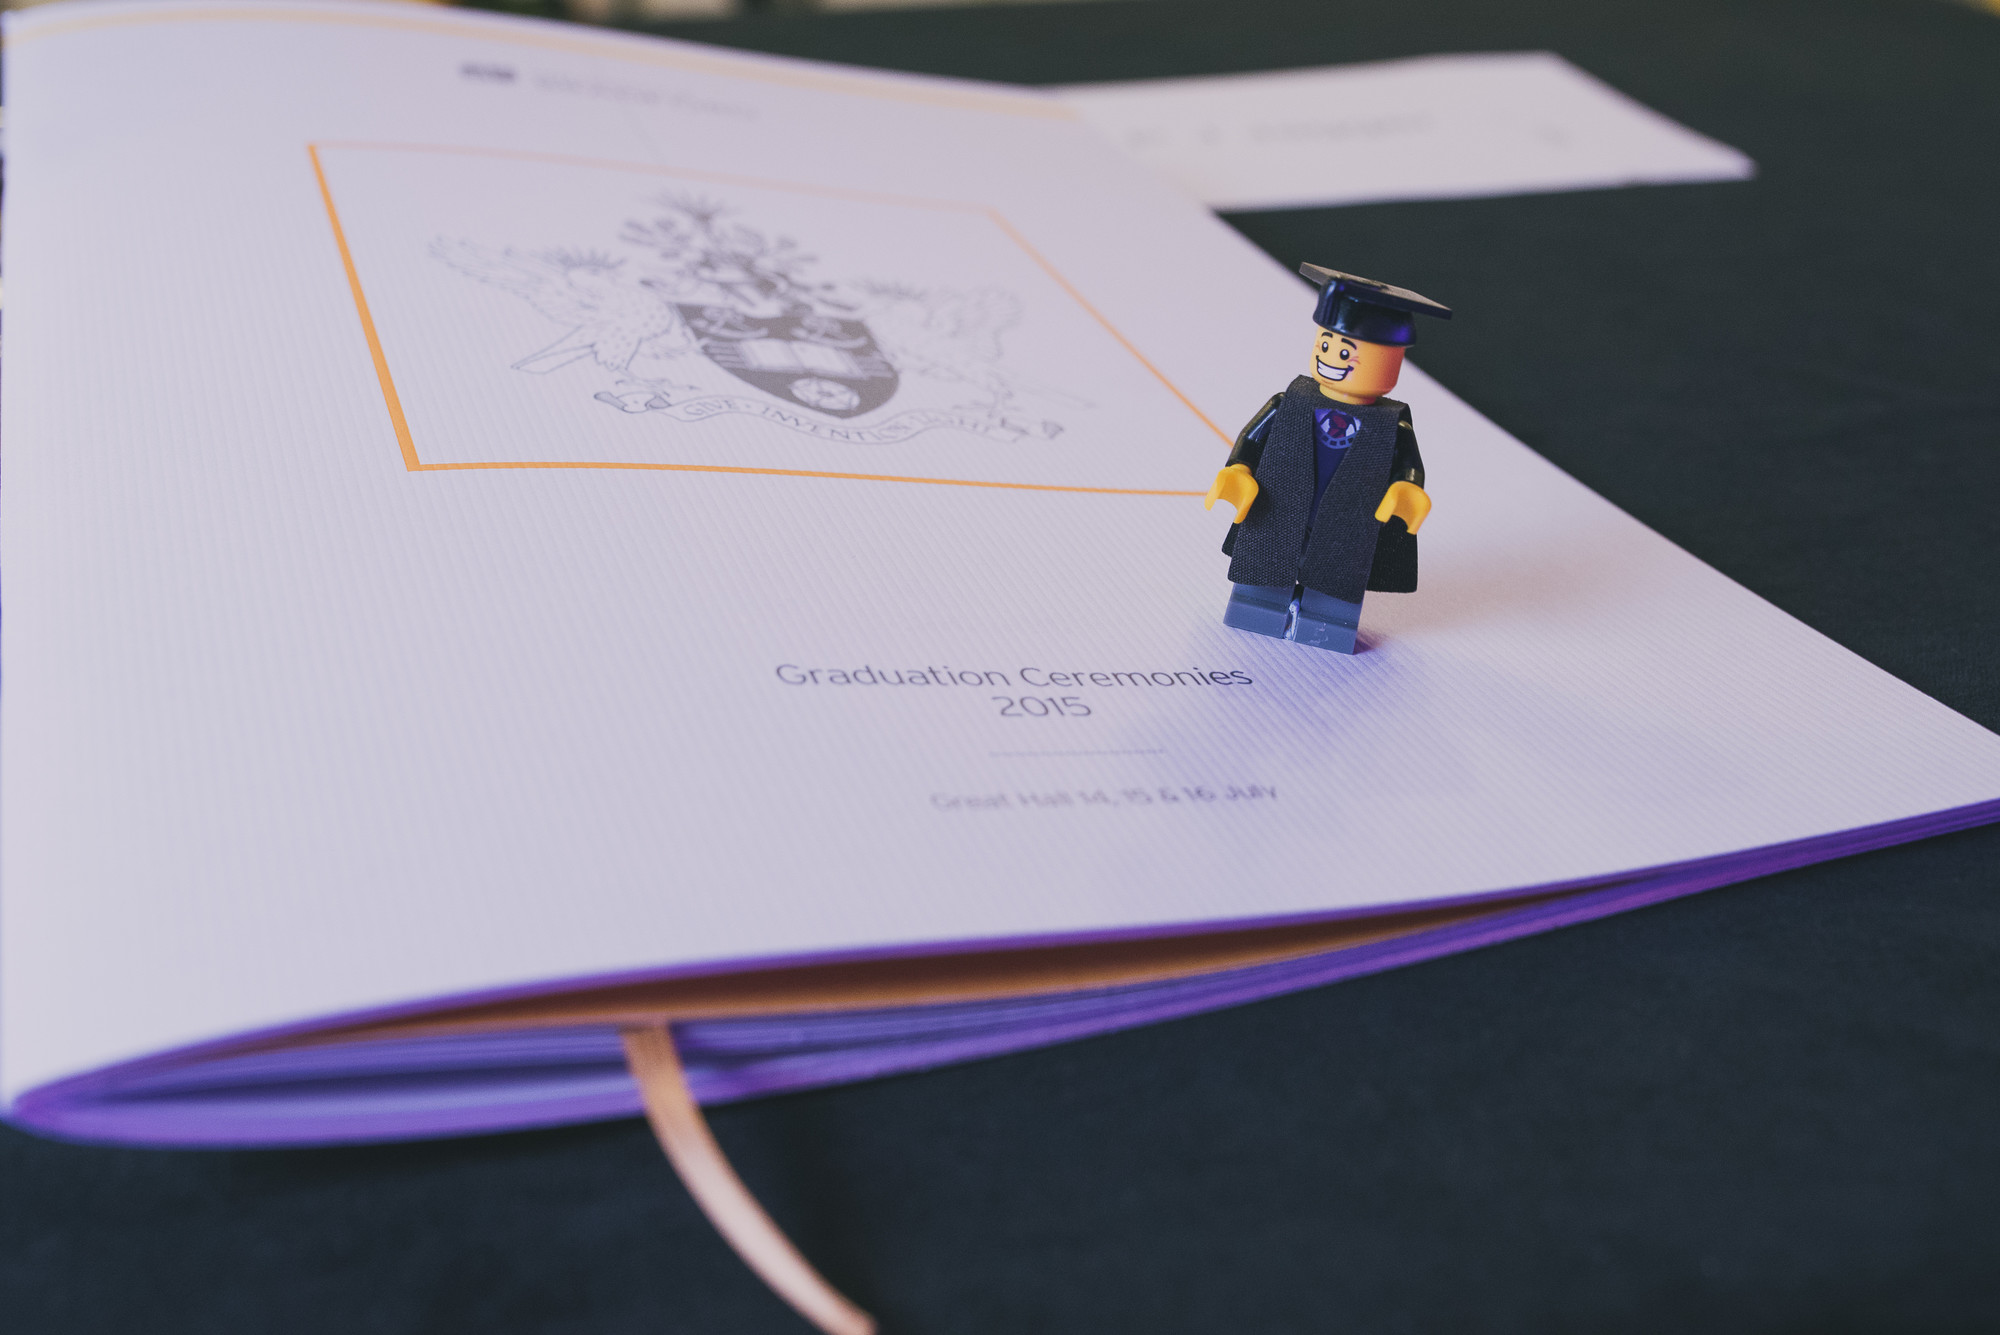 2015 Graduation booklet with lego figurine